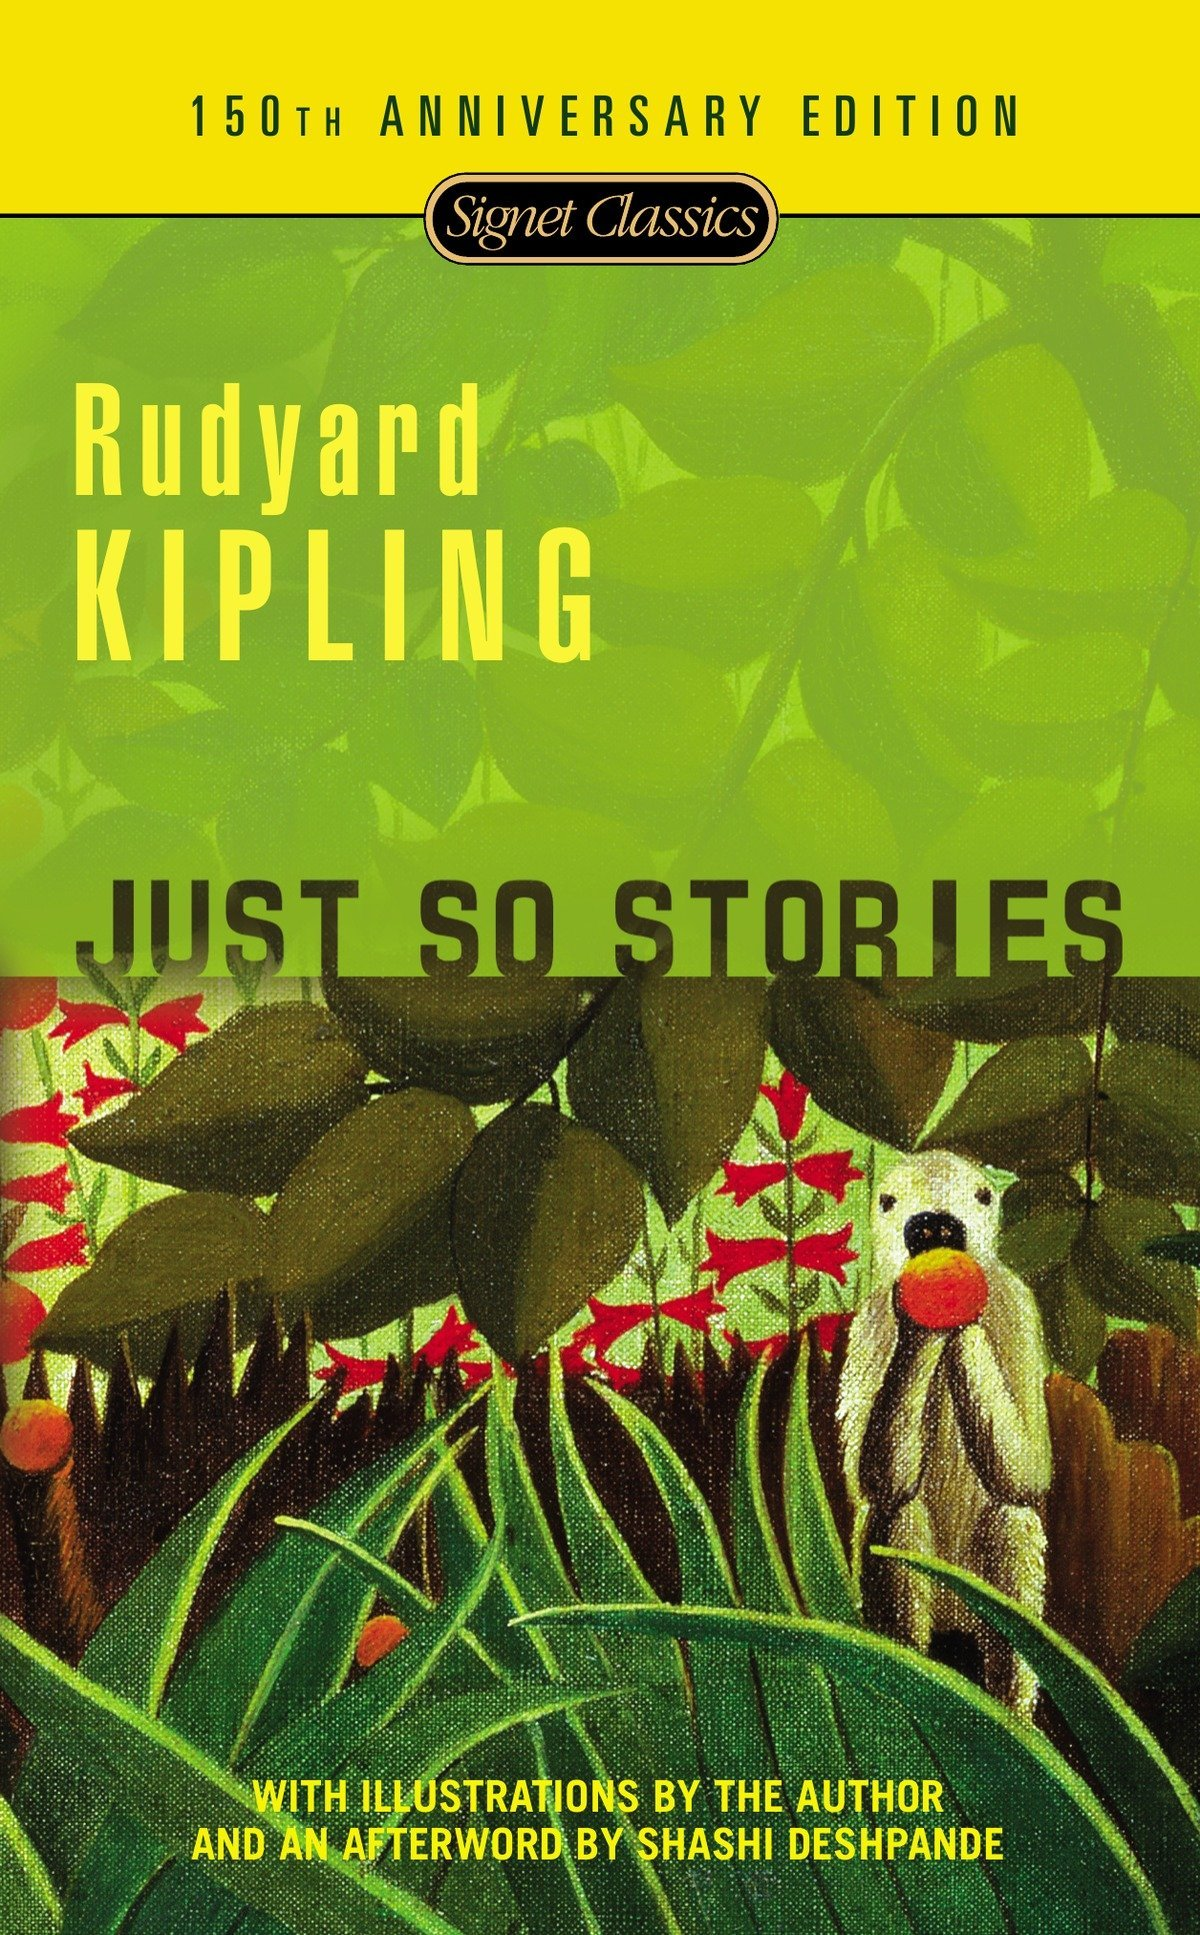 Just So Stories: 100th Anniversary Edition: Rudyard Kipling, Avi, Shashi Deshpande: 9780451531506: Amazon.com: Books